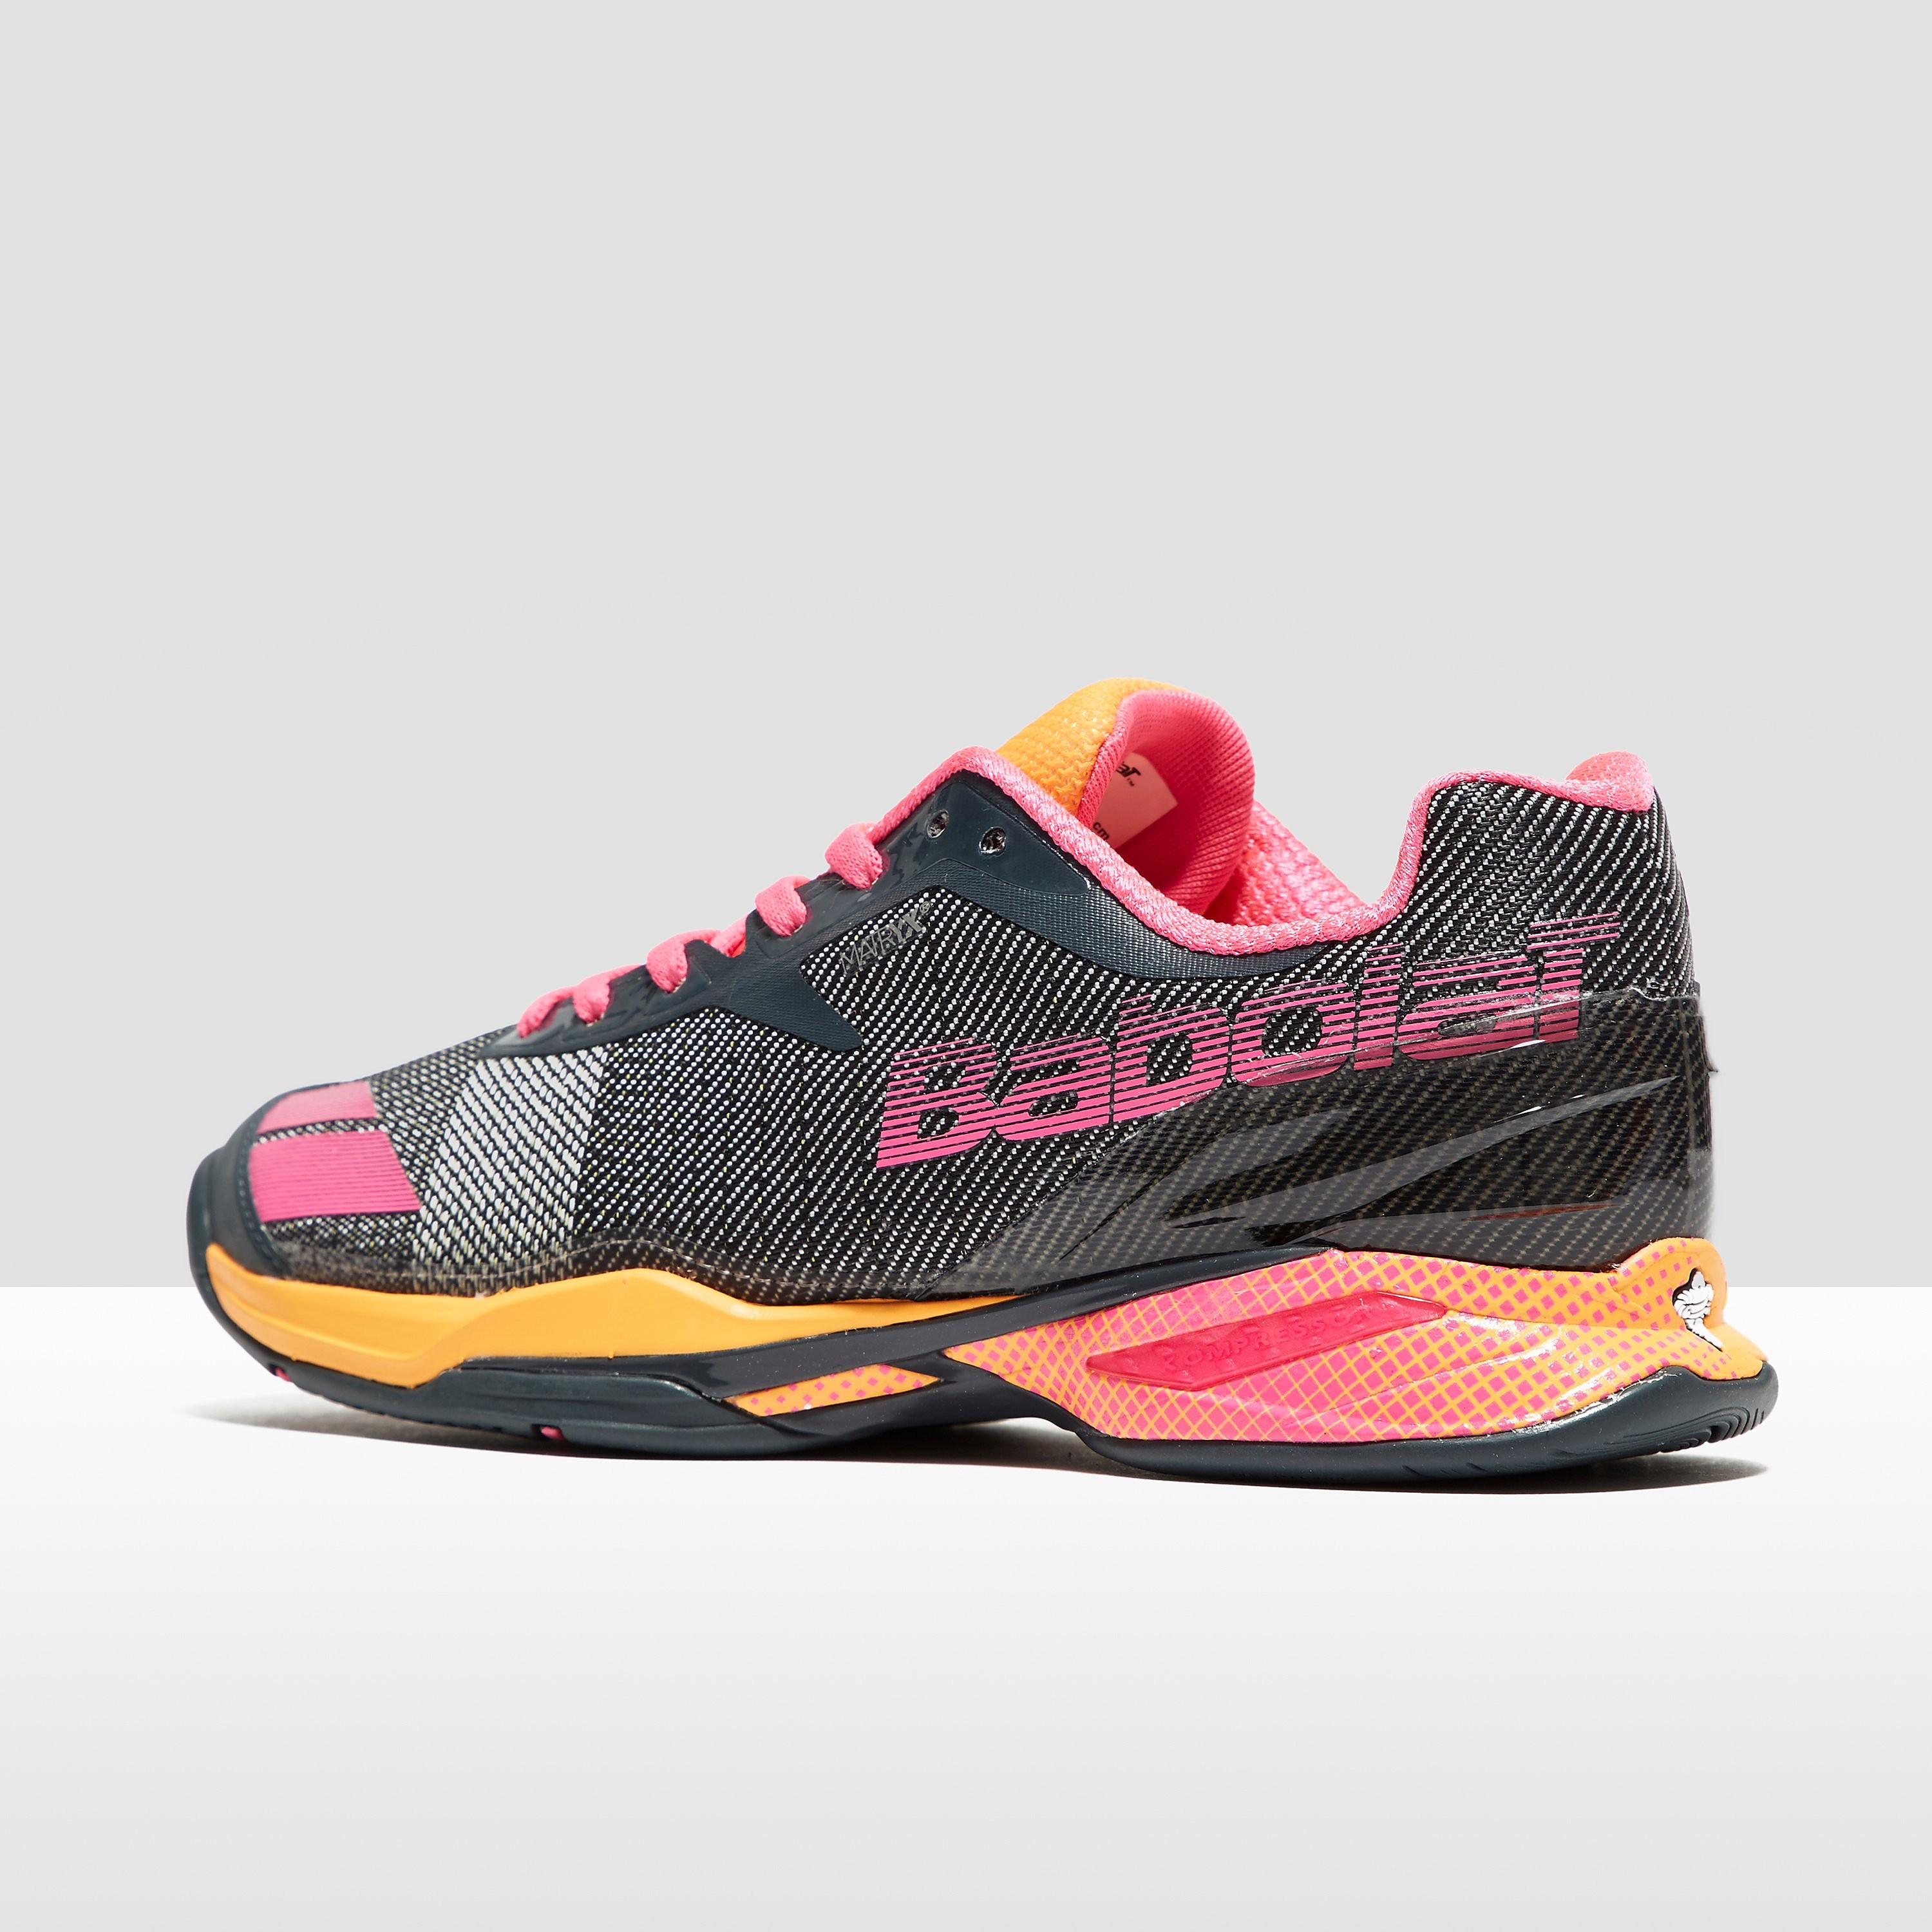 Babolat Jet All Court Women's Tennis Shoes